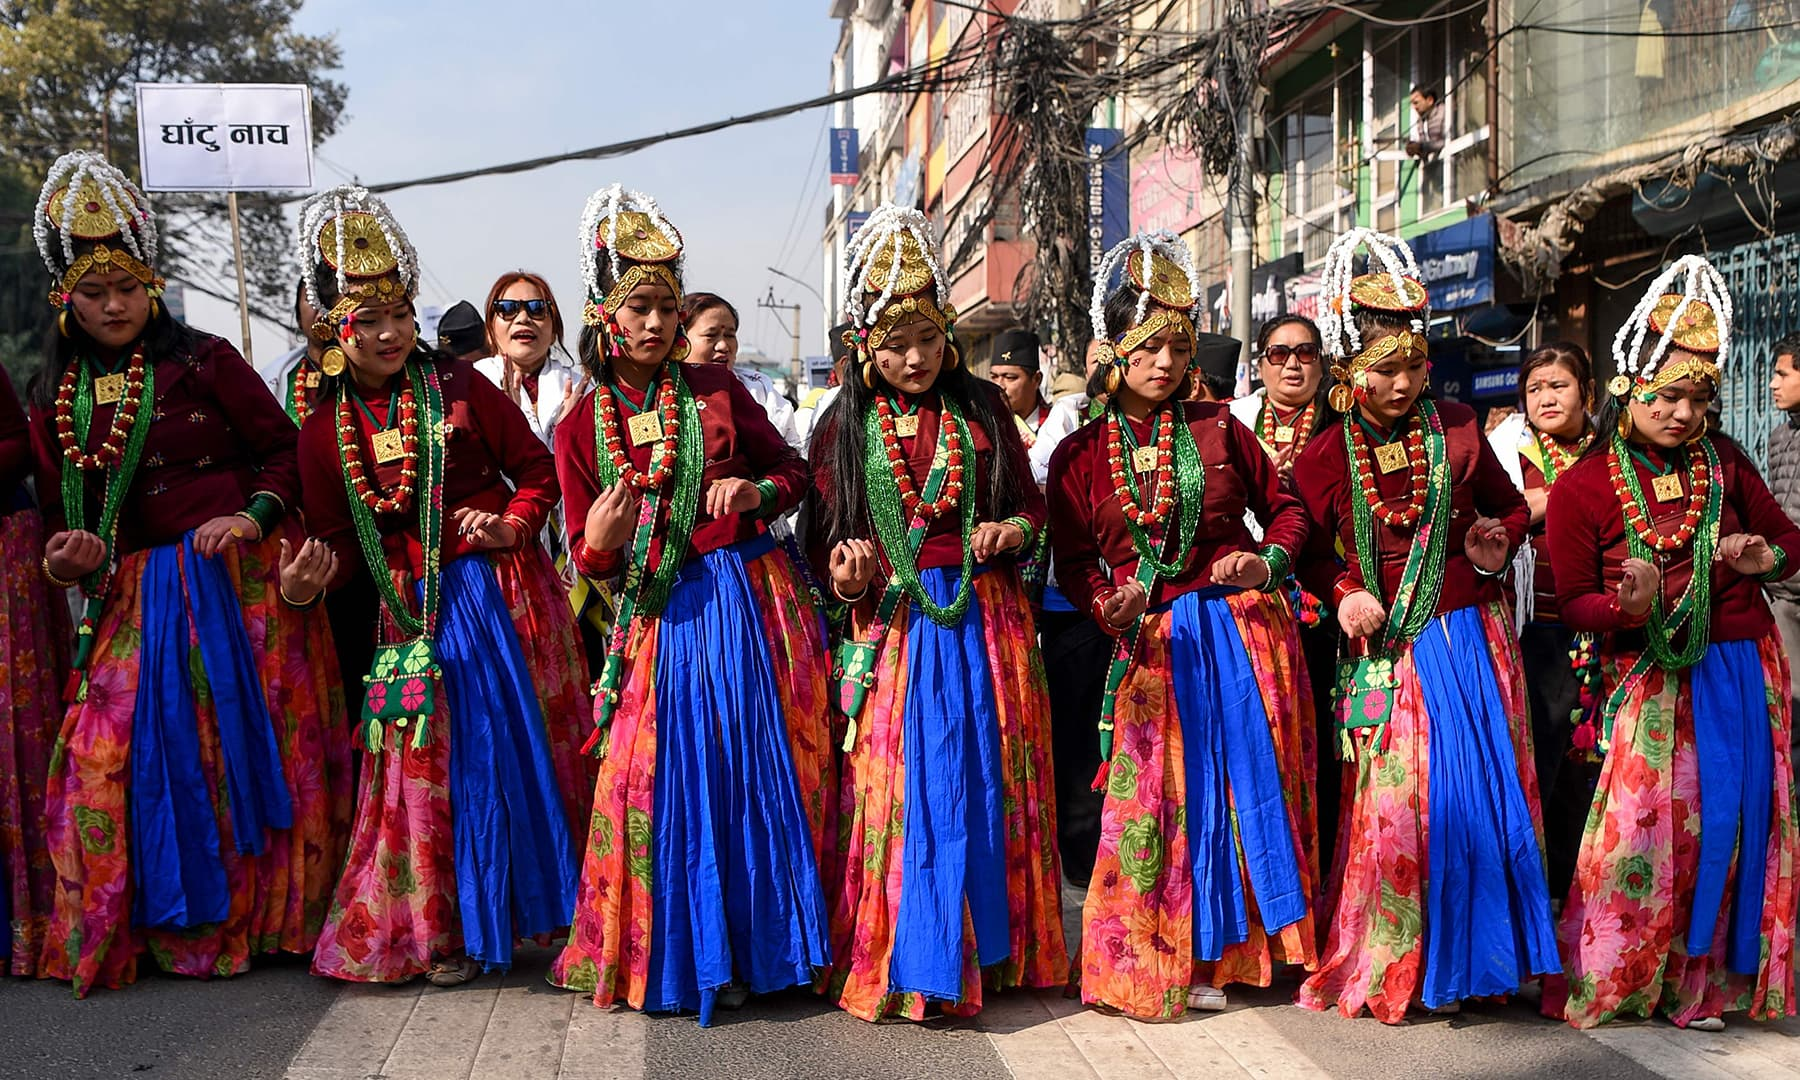 Members of the indigenous Gurung community wearing traditional attire perform as they take part in a New Year celebration ceremony known as 'Tamu Lhosar' in Kathmandu on Tuesday. — AFP